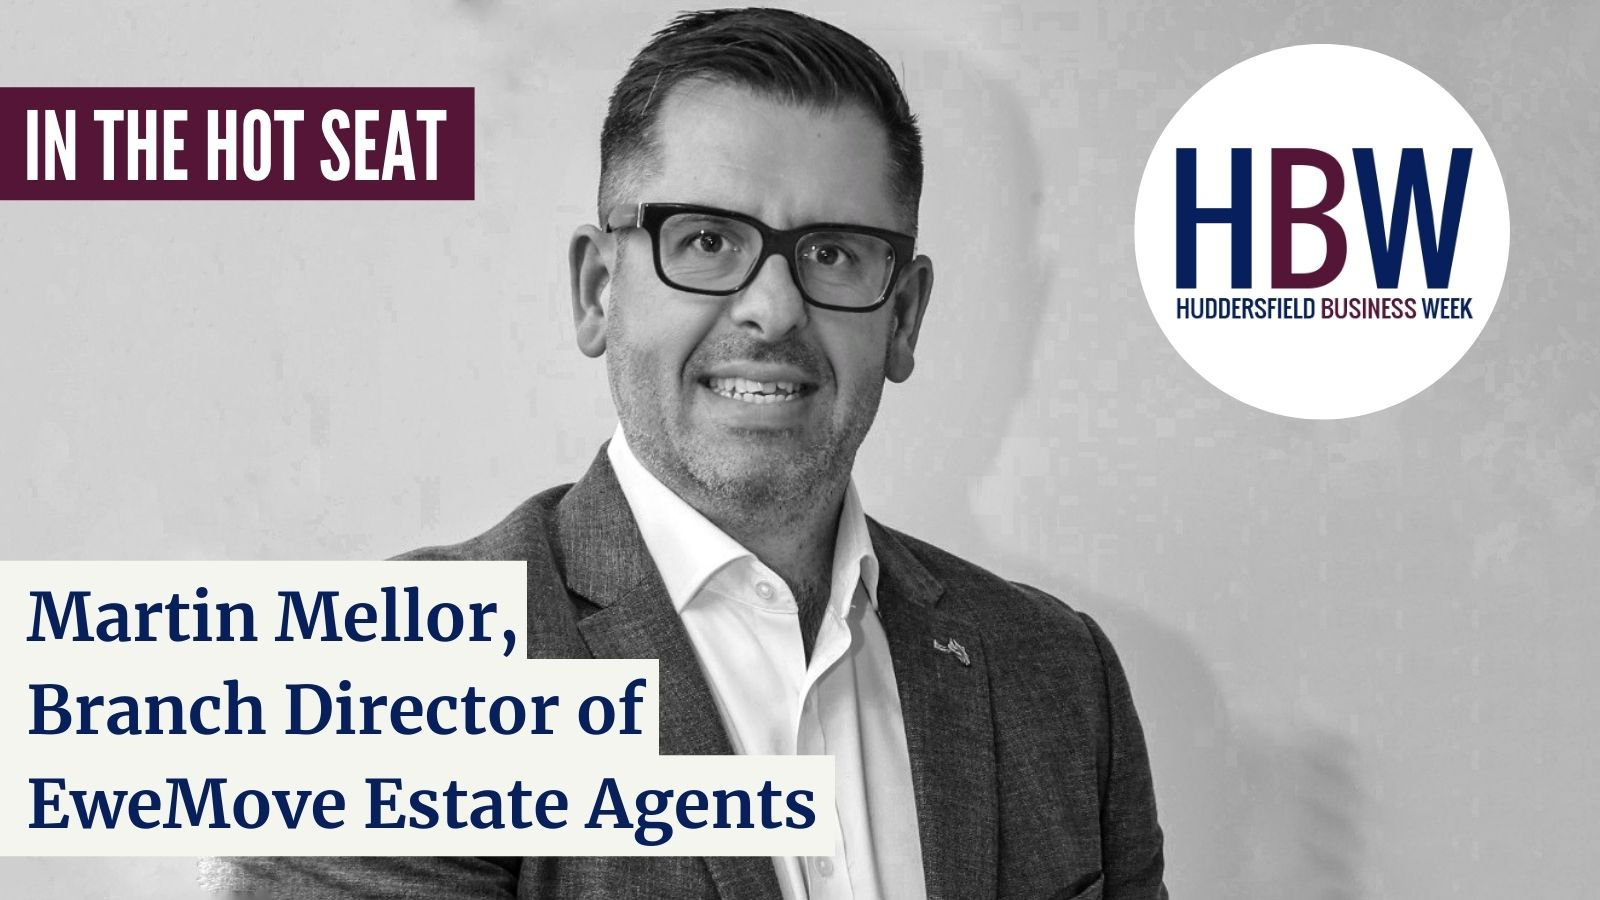 In the Hot Seat with… Martin Mellor of EweMove!